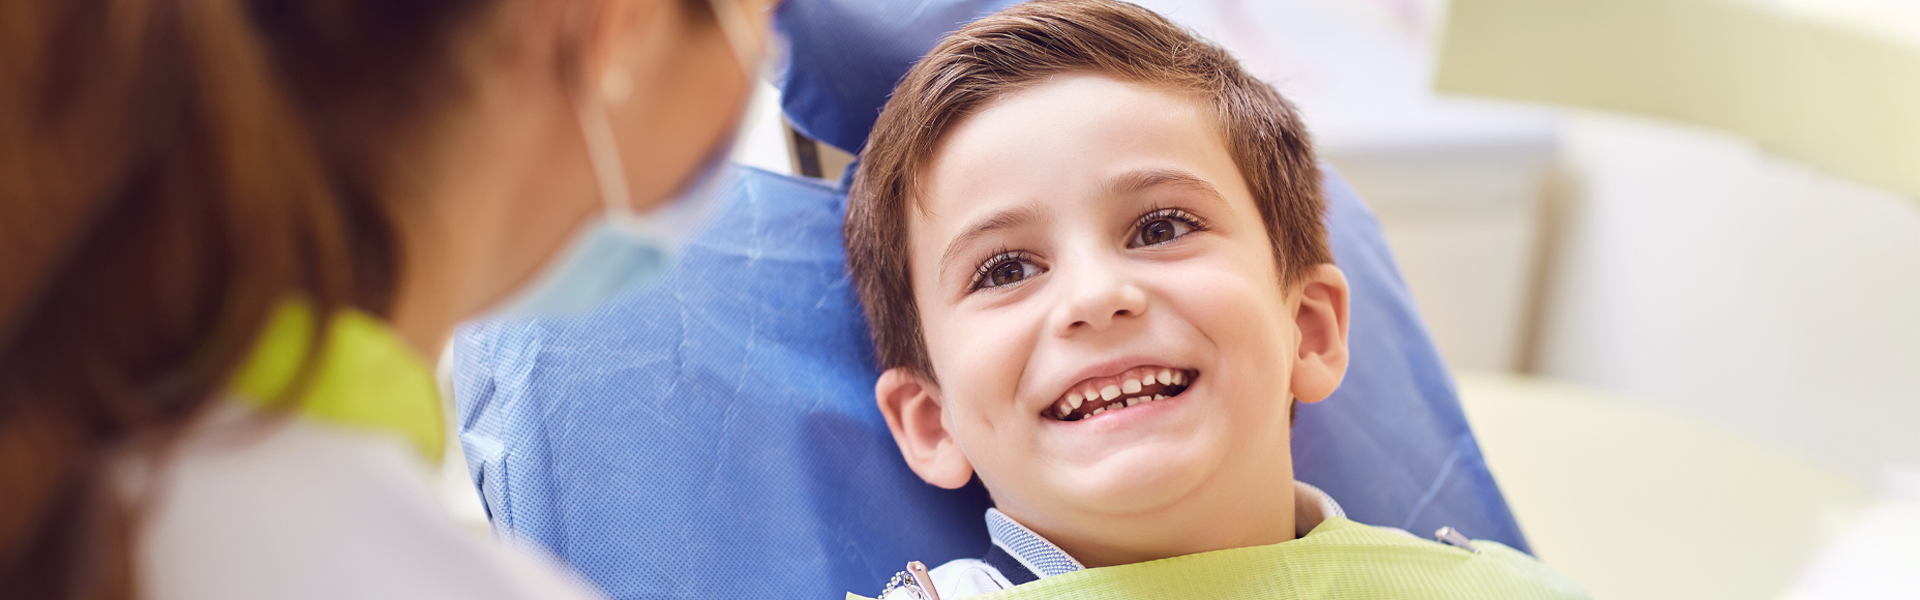 Pediatric Dentists VS Family Dentists: Know the Difference